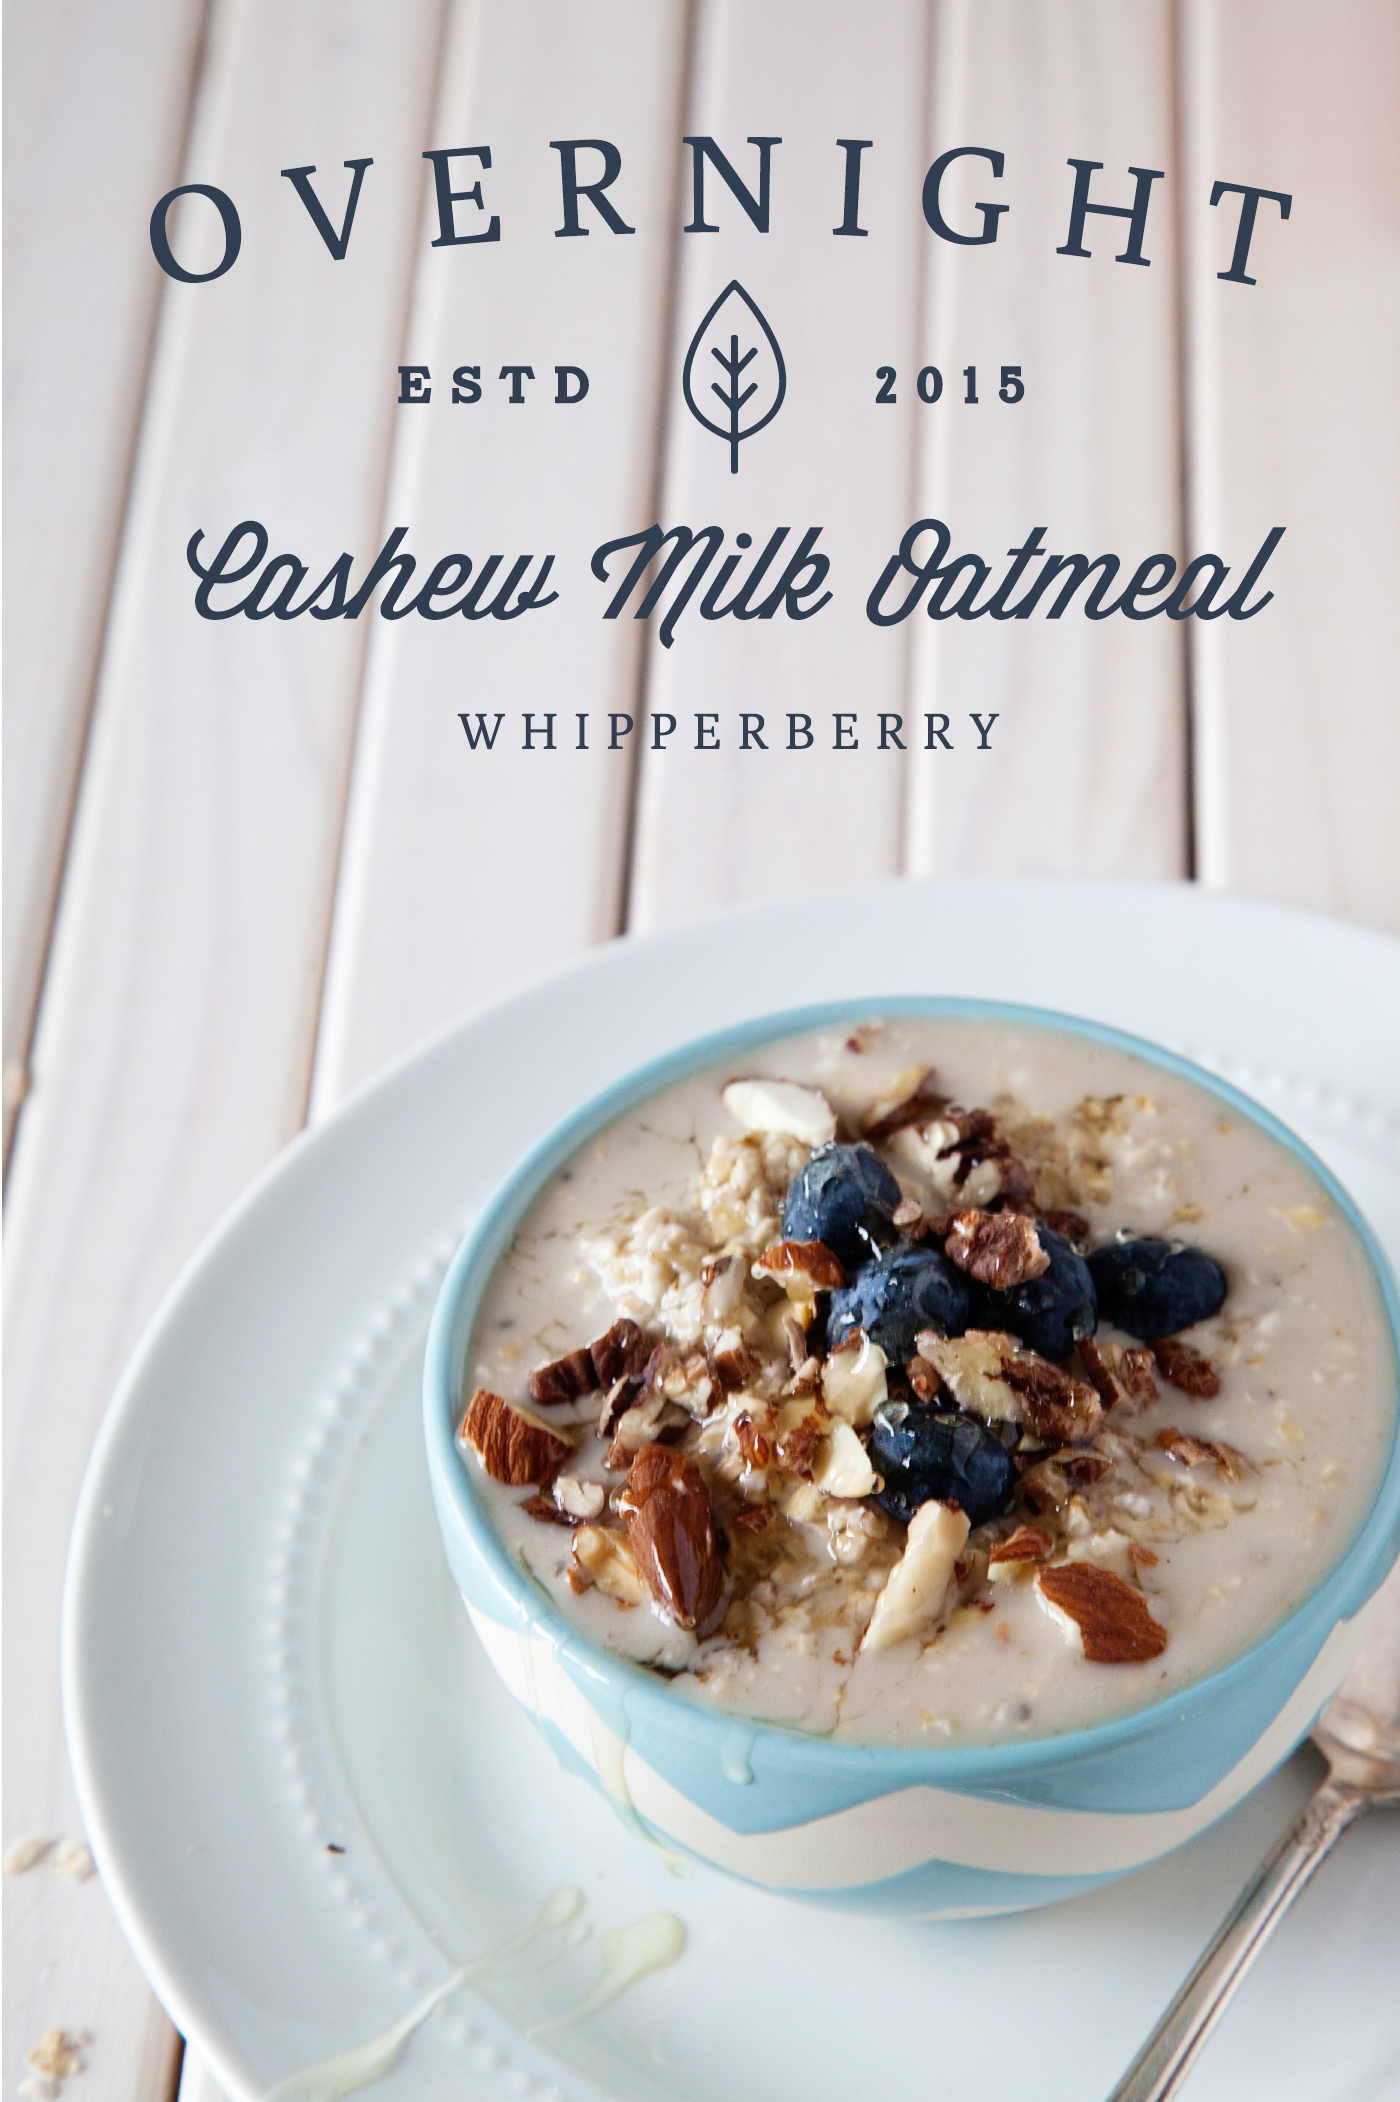 Overnight-Oats-with-Silk-Cashew-Milk-from-WhipperBerry